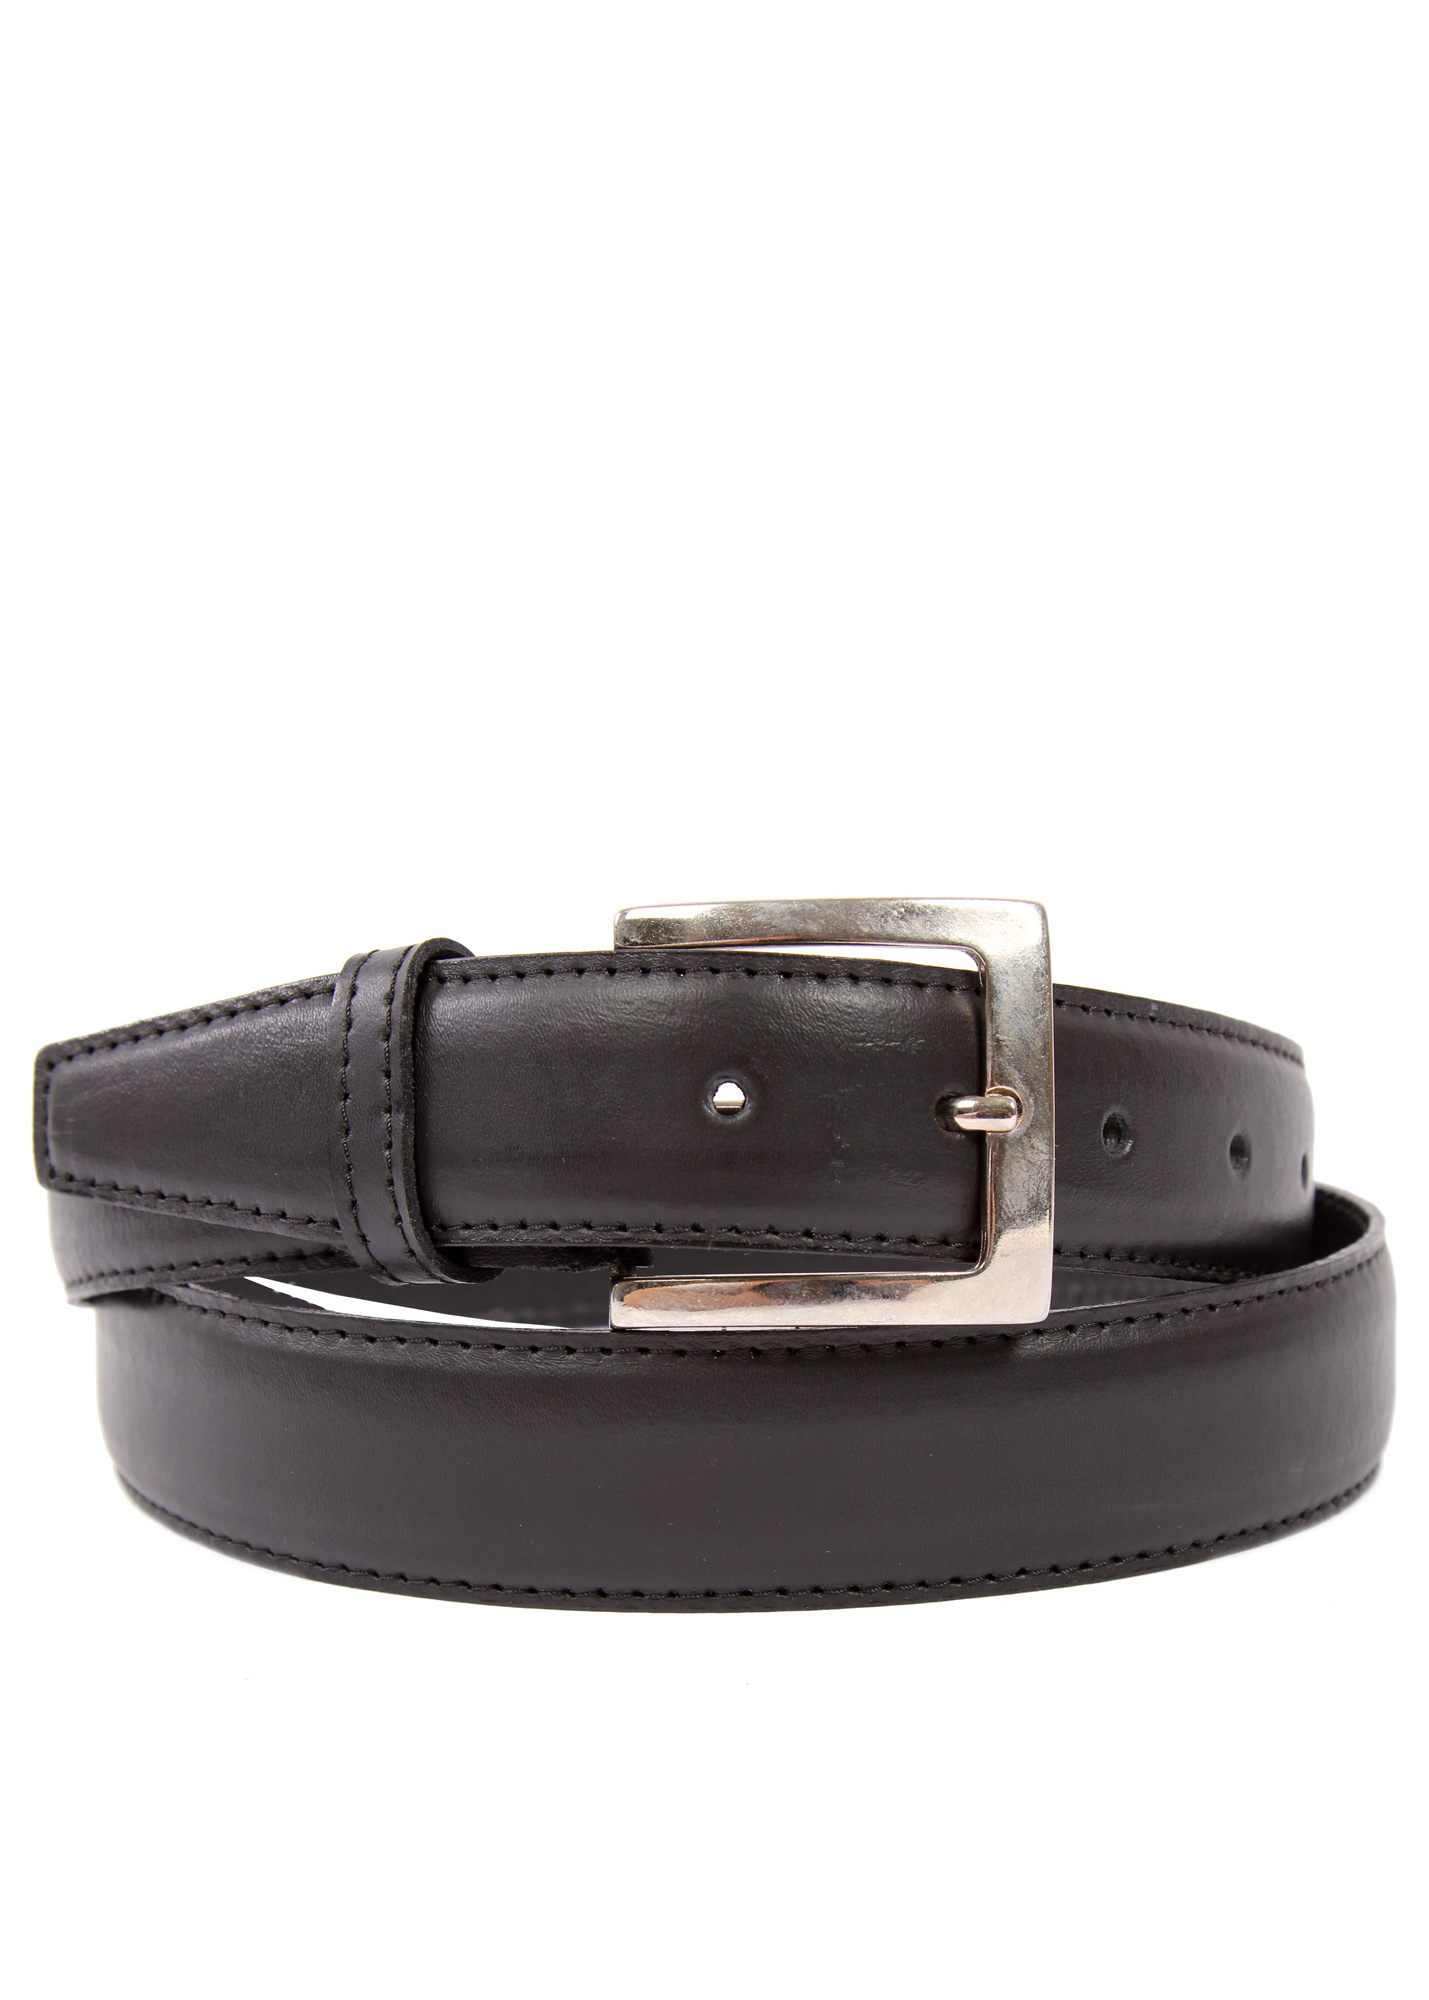 We attach belt buckles securely with snaps on our standard belts and Chicago screws on our double thick harness leather belts. We guarantee our work %. If you should have any problems with the hardware or stitching repairs are free of charge.